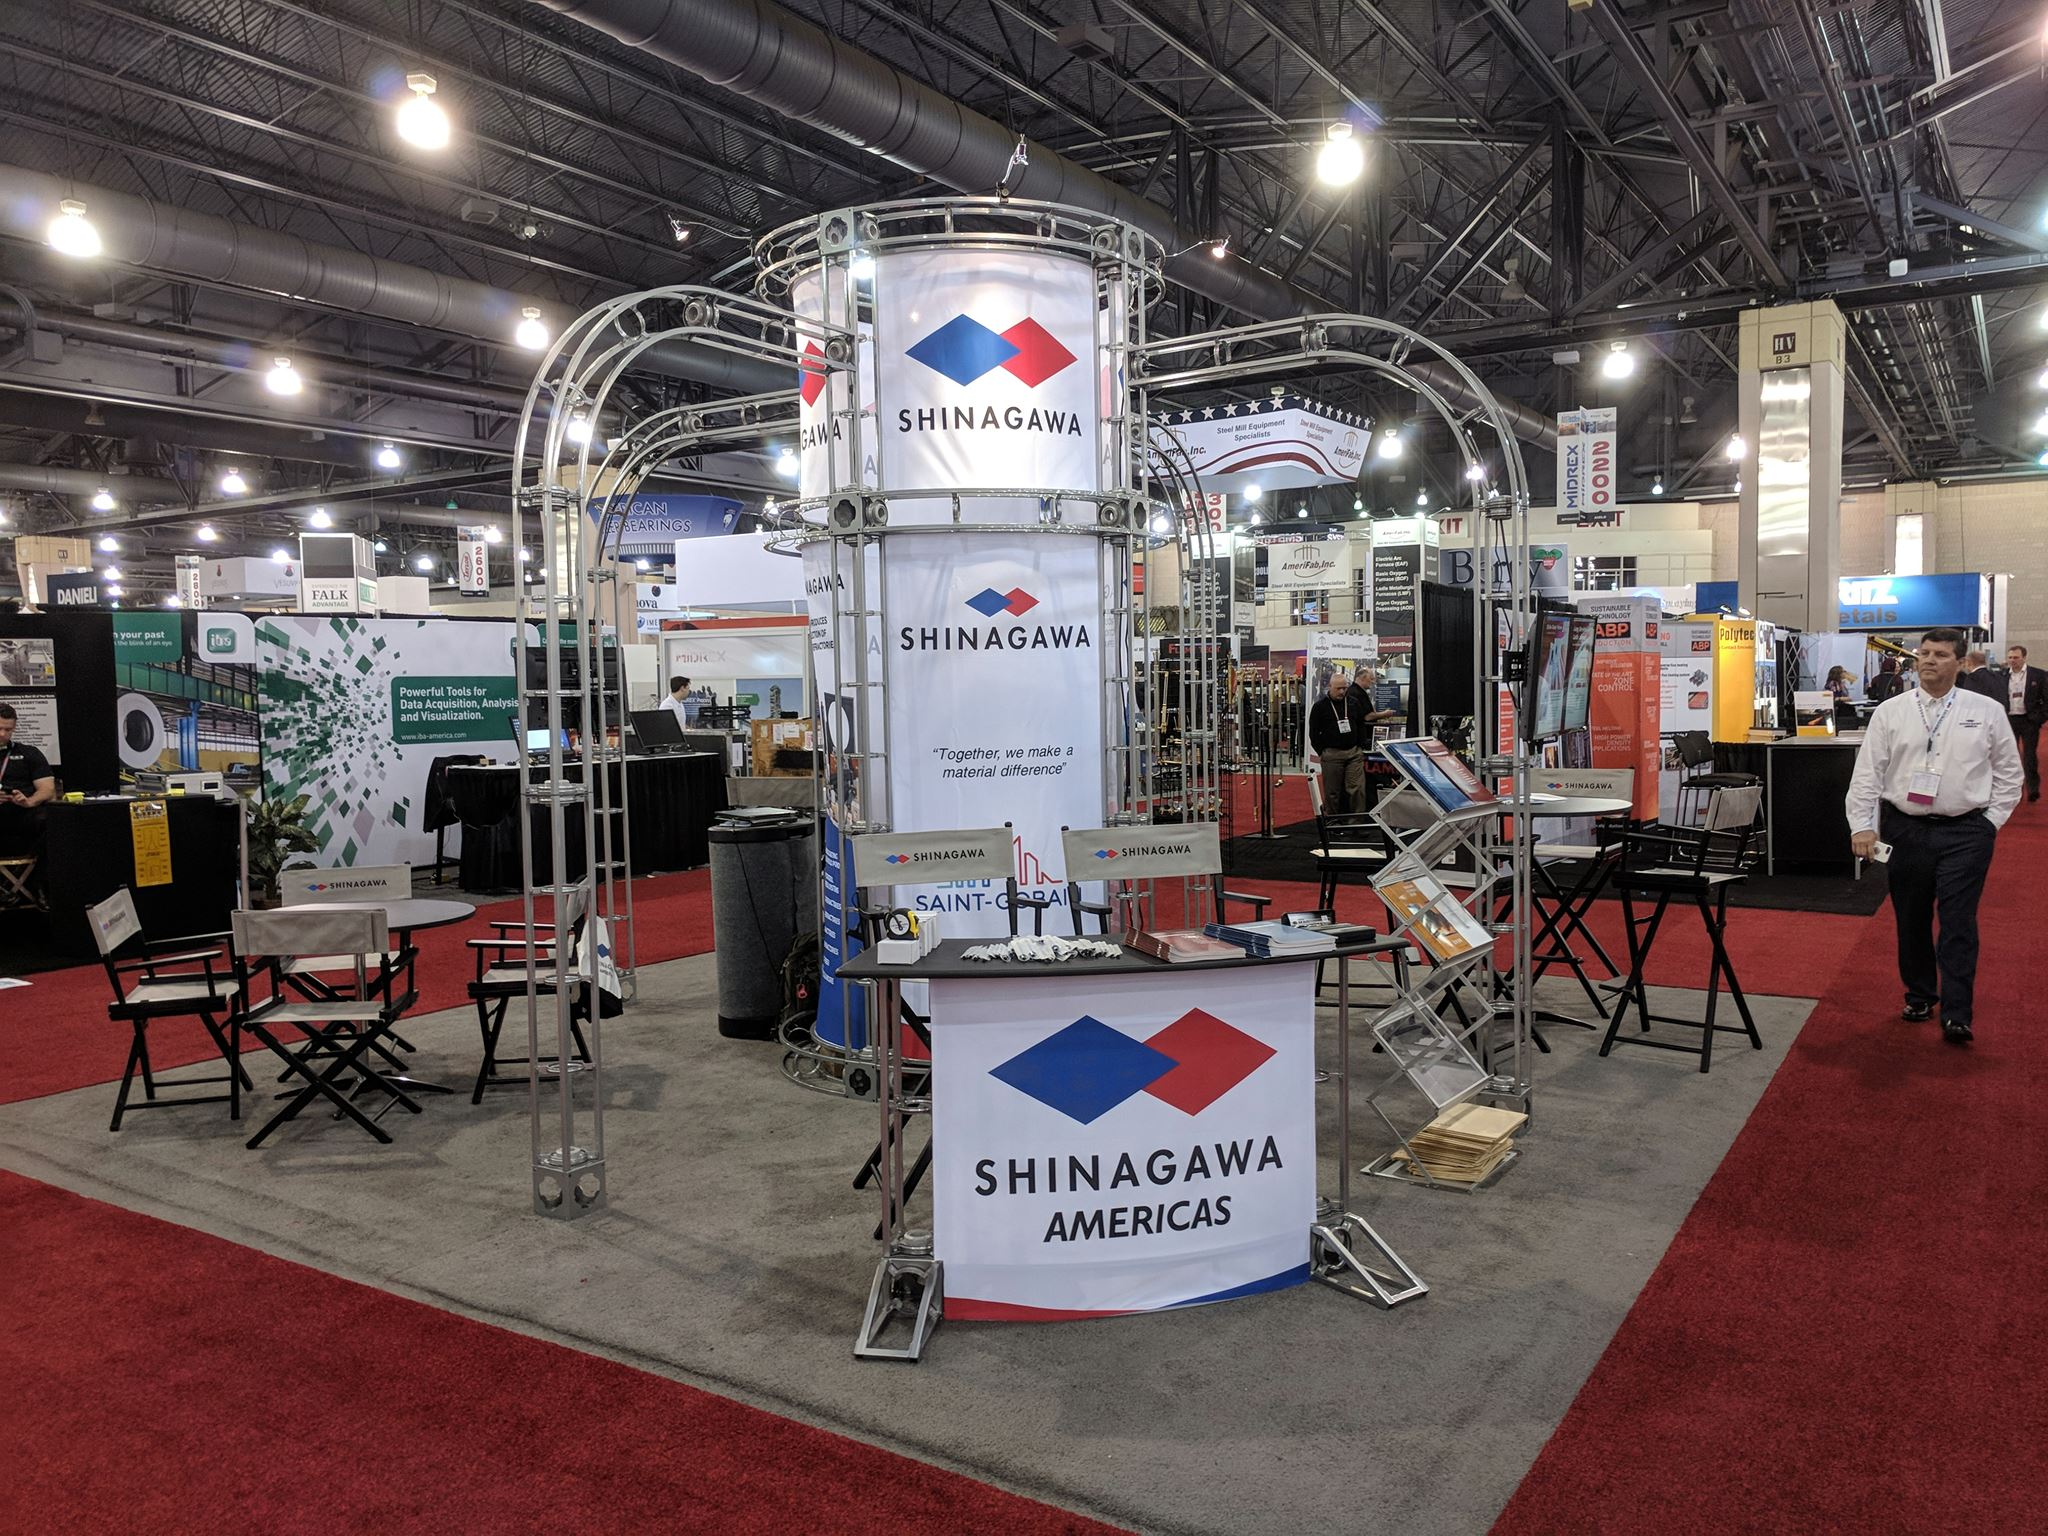 20' x 20' island booth example from Shinagawa